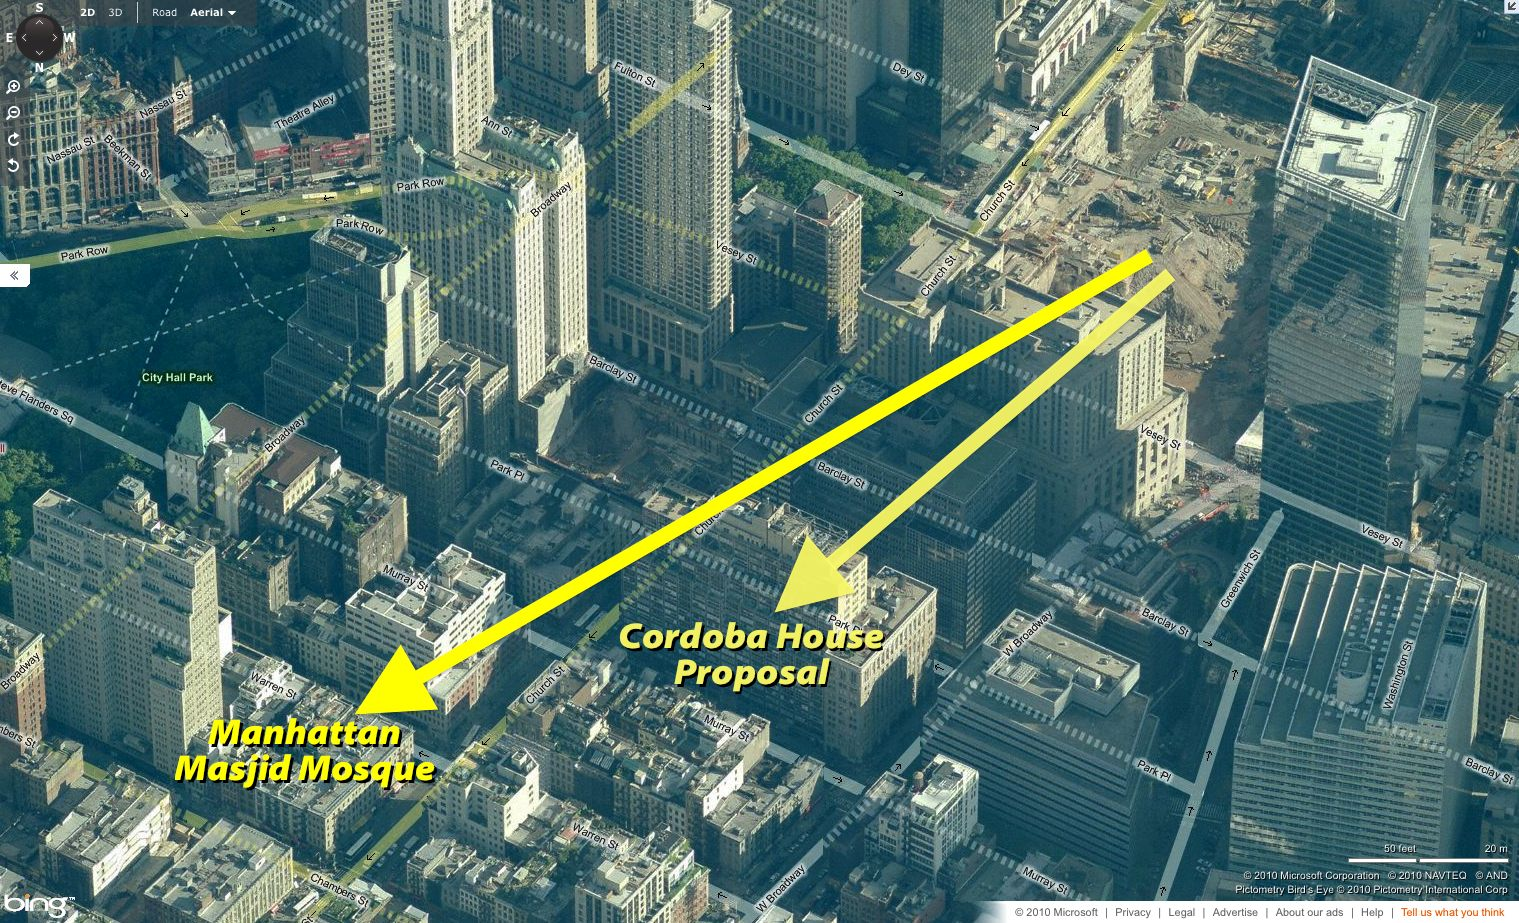 mosque near ground zero If a mosque is built at the proposed site, then the ahmadiyya muslim community would like to see churches, synagogues, hindu places of worship and places of worship of all other religions also built near ground zero.